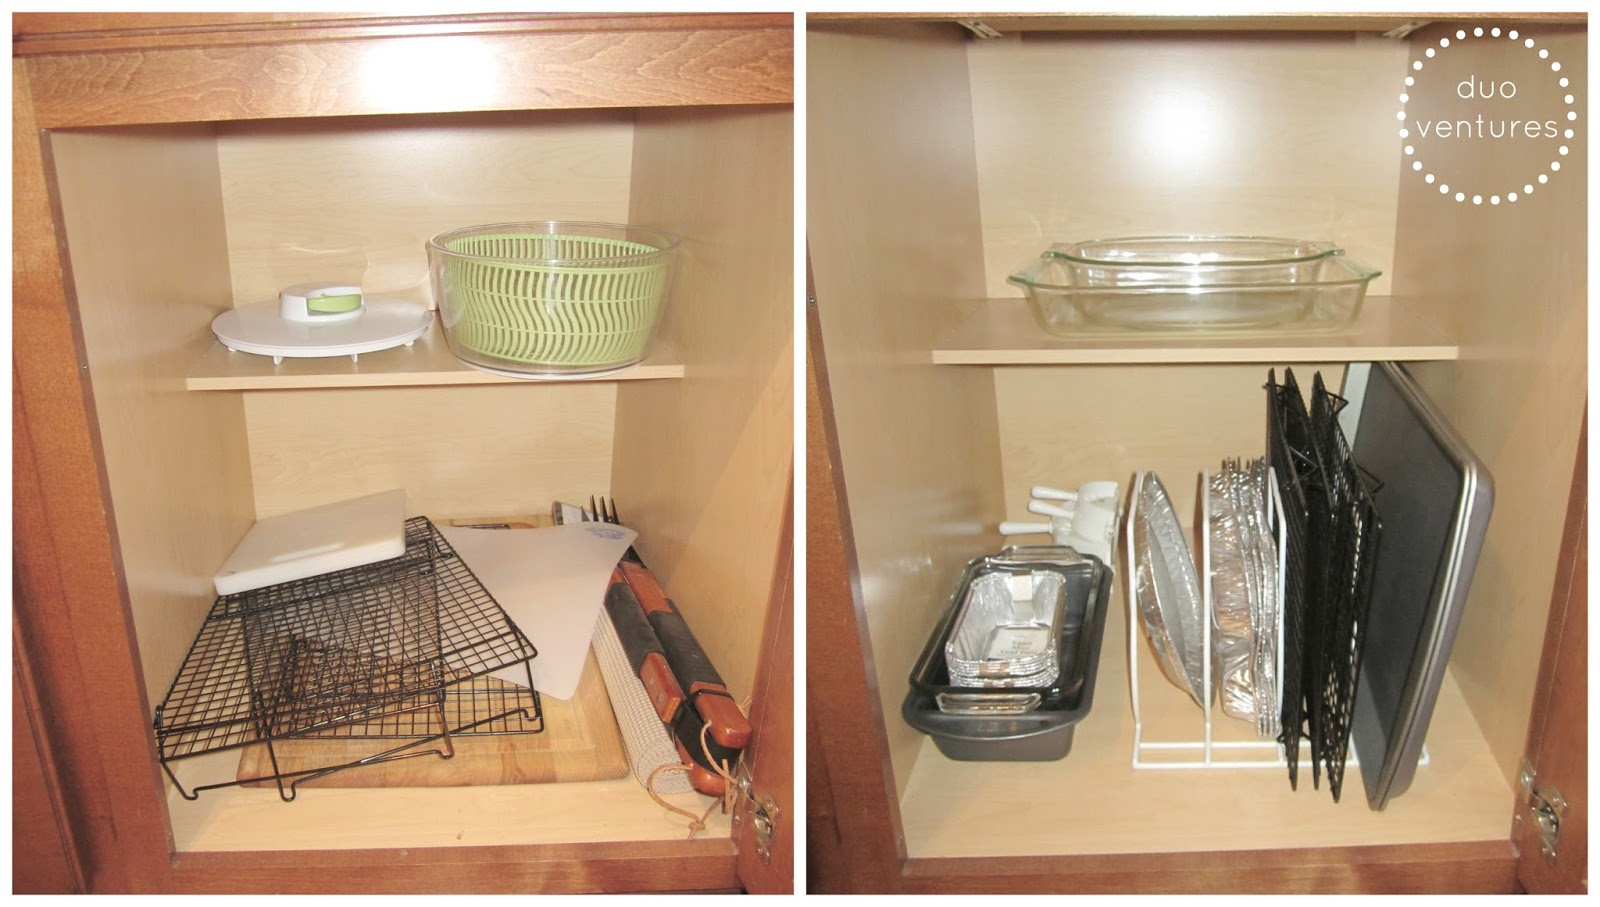 Duo Ventures: Organizing: The Kitchen